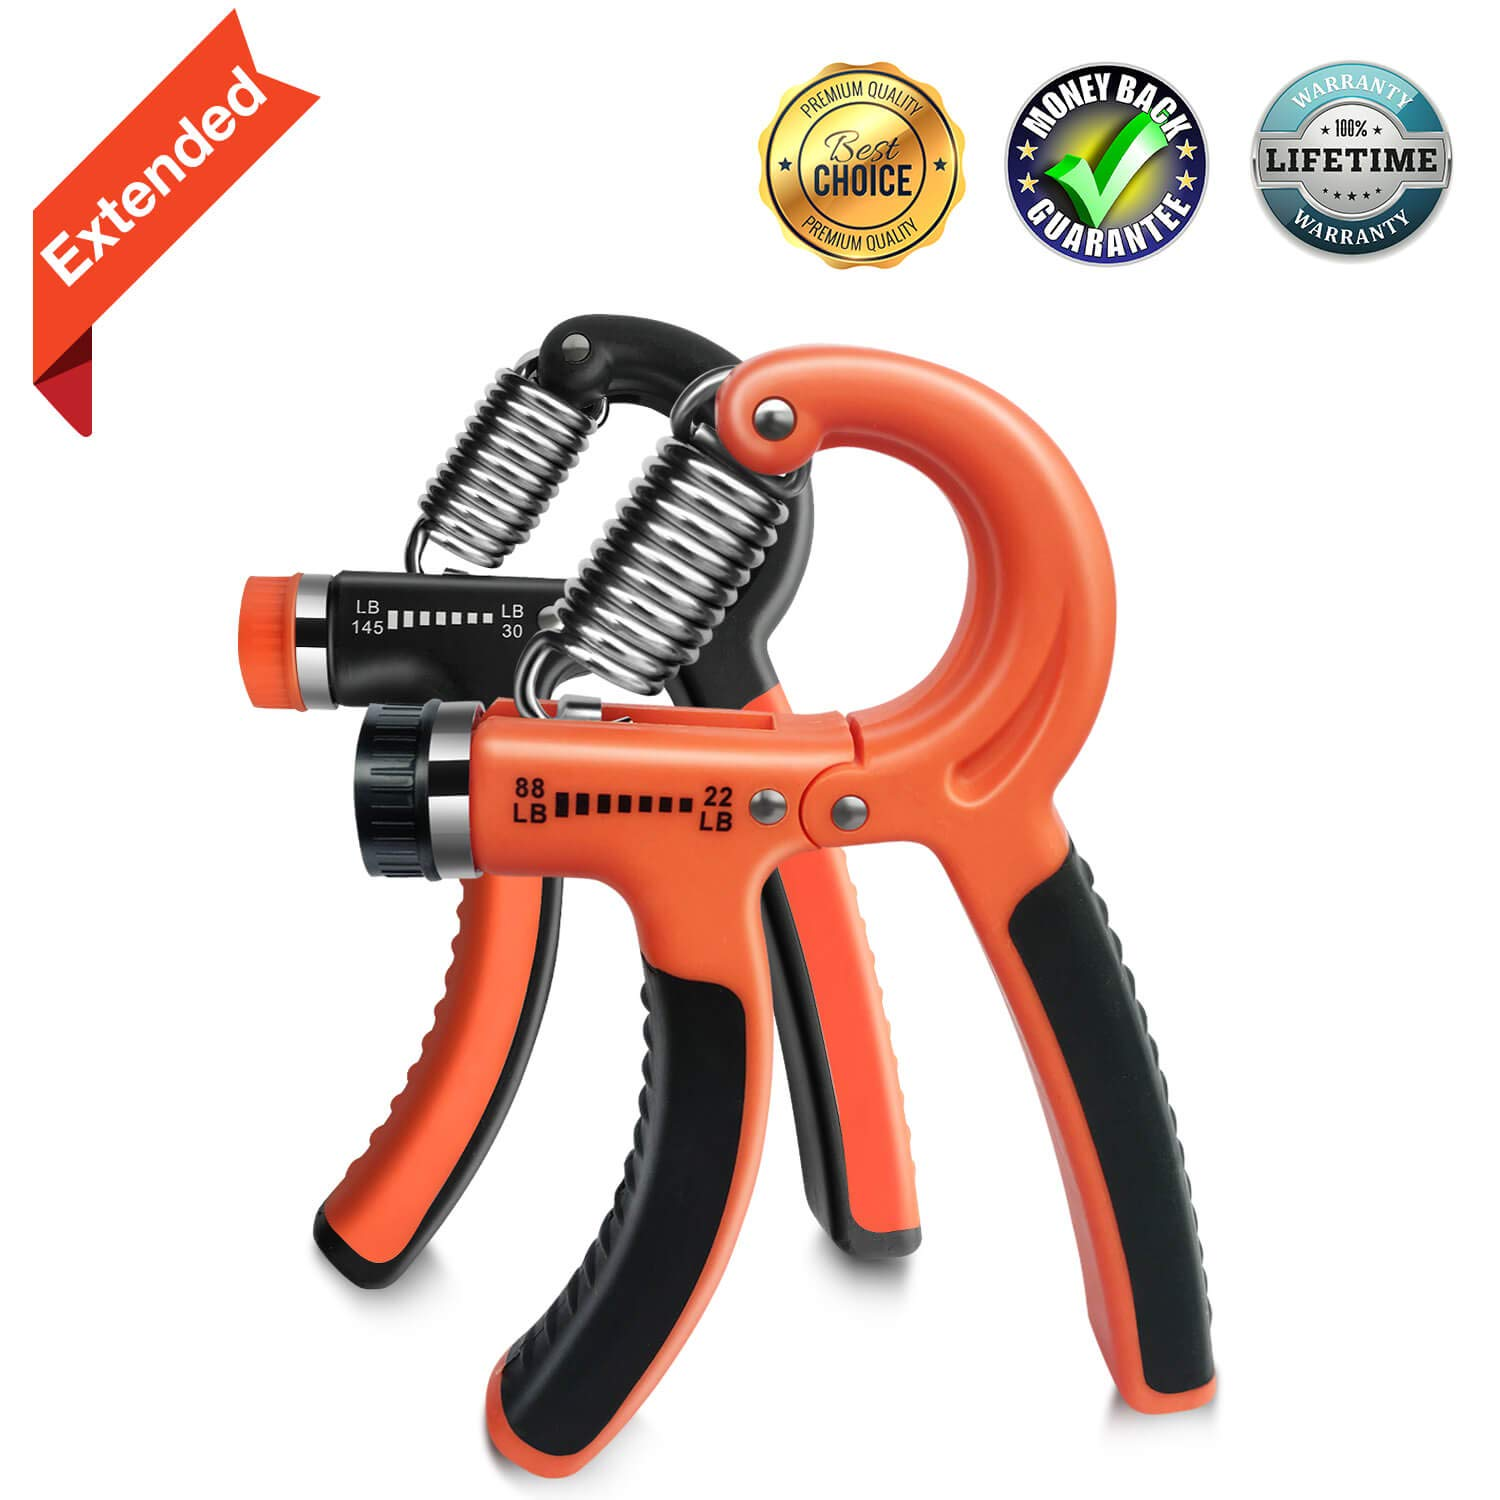 Hand Grip Strengthener, Grip Strength Trainer Forearm Grip Workout Adjustable Resistance (22-88 Lbs&30-145 Lbs) Extended Hand Gripper Grip Exerciser for Athletes Musicians Men (Grip Strength Trainer)